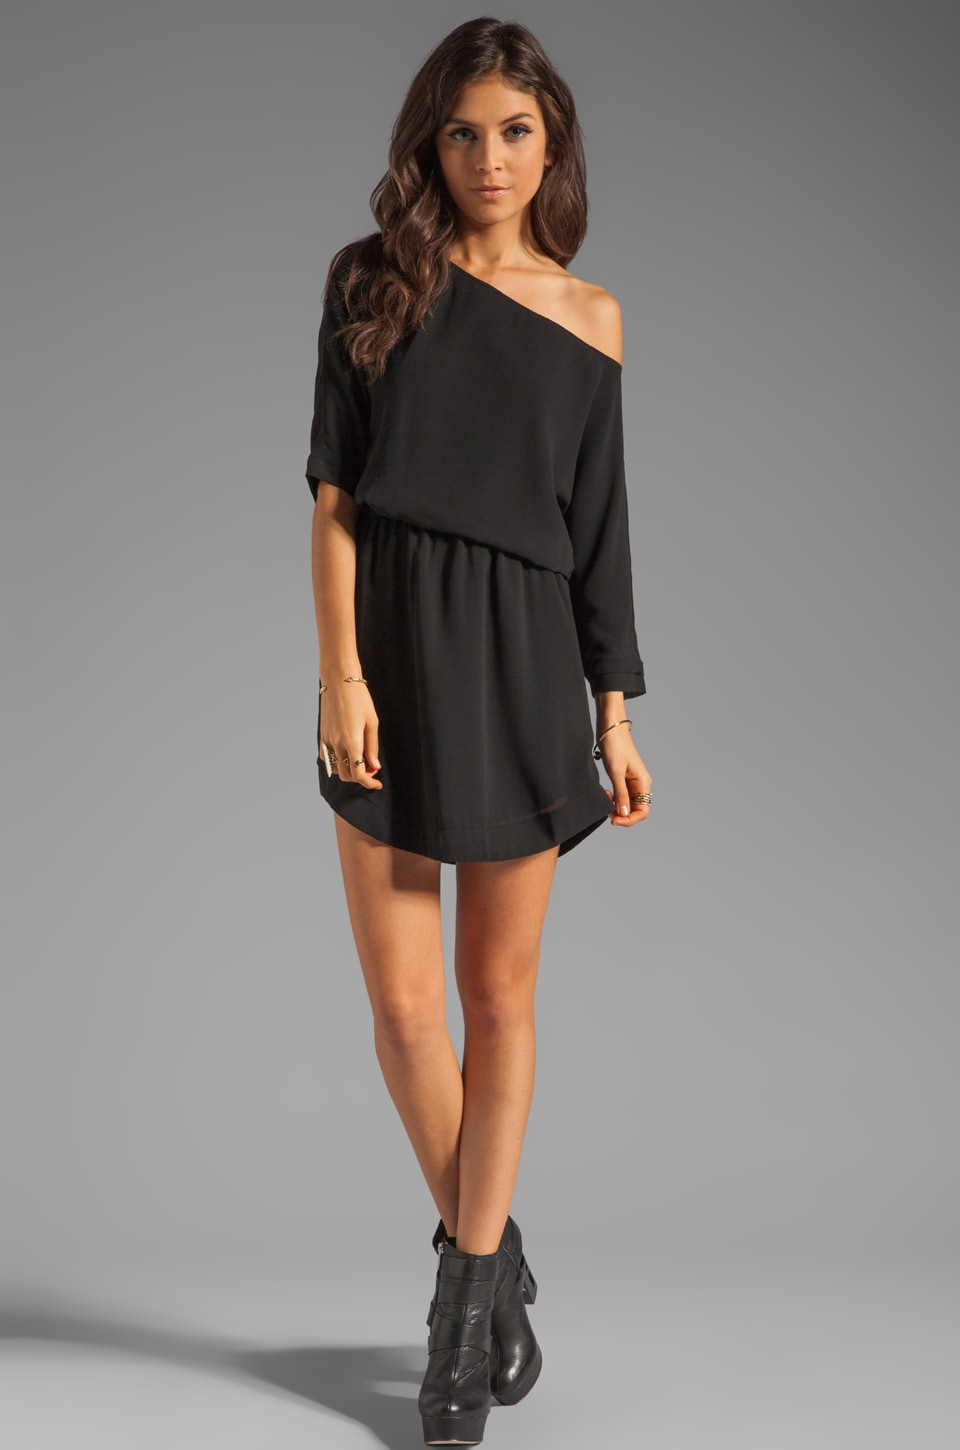 Lovers + Friends Easy Dress in Black